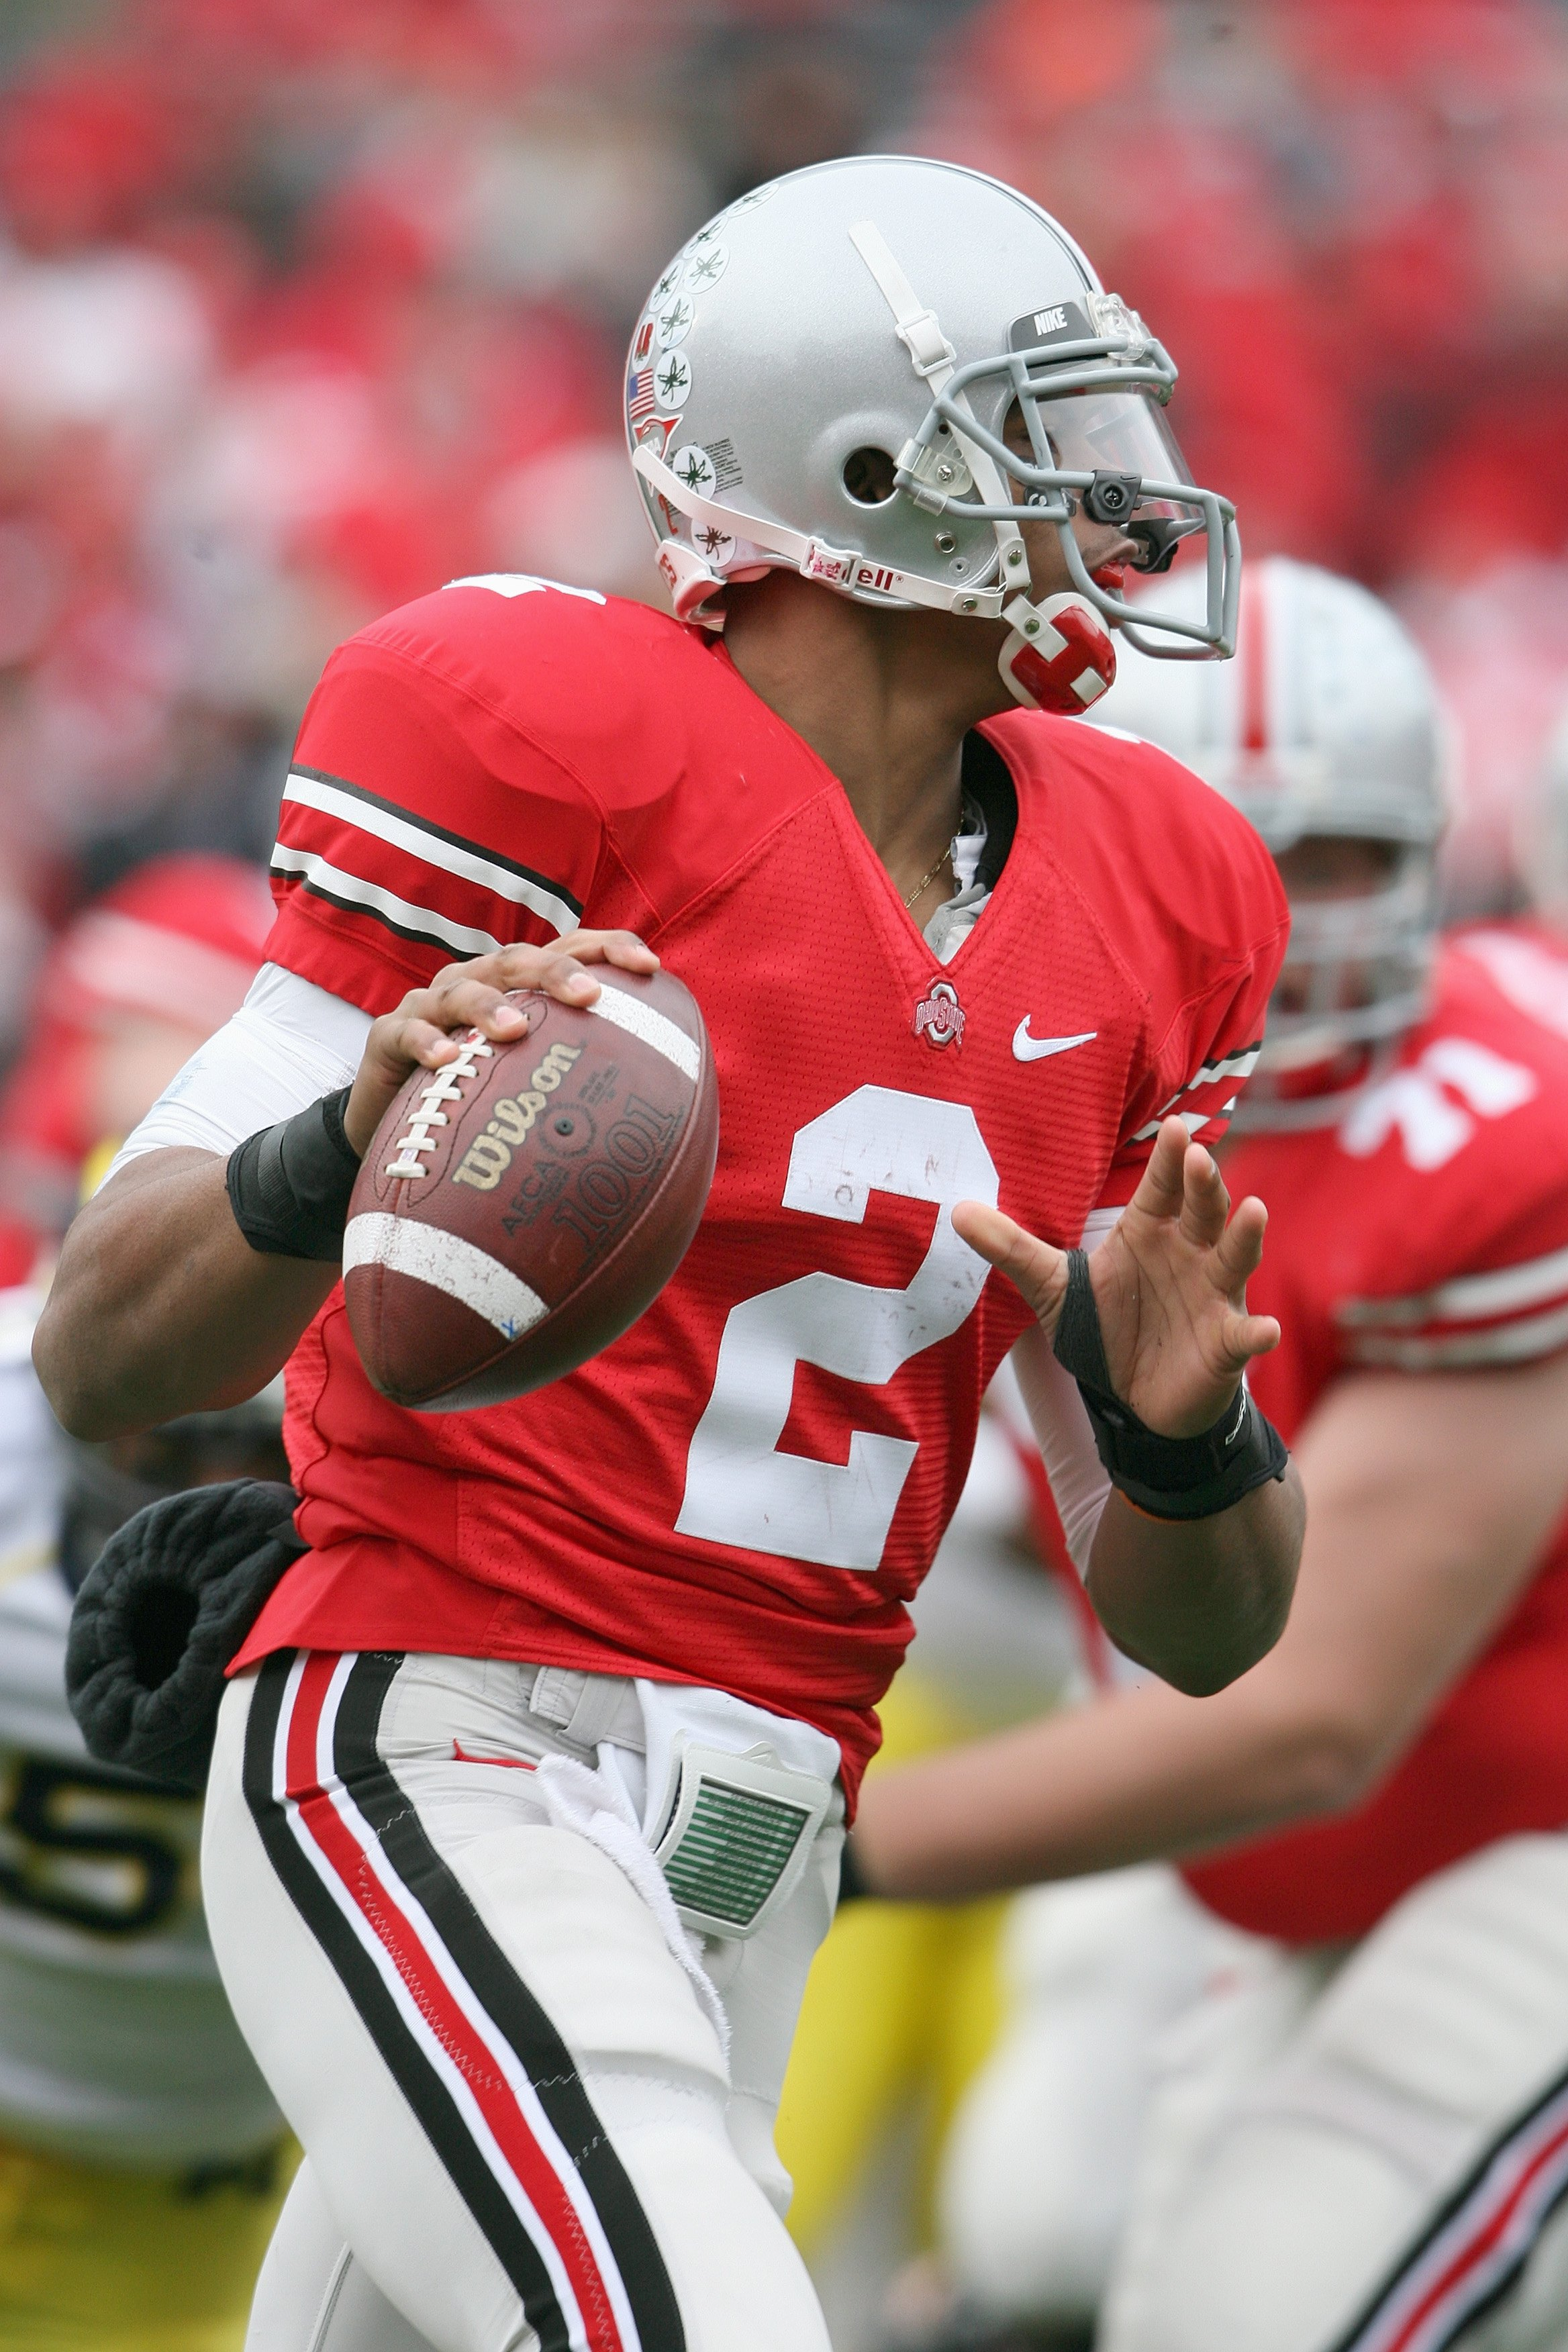 COLUMBUS, OH - NOVEMBER 22:  Quarterback Terrelle Pryor #2 of the Ohio State Buckeyes looks to pass the ball during the Big Ten Conference game against the Michigan Wolverines at Ohio Stadium on November 22, 2008 in Columbus, Ohio.  (Photo by Andy Lyons/G